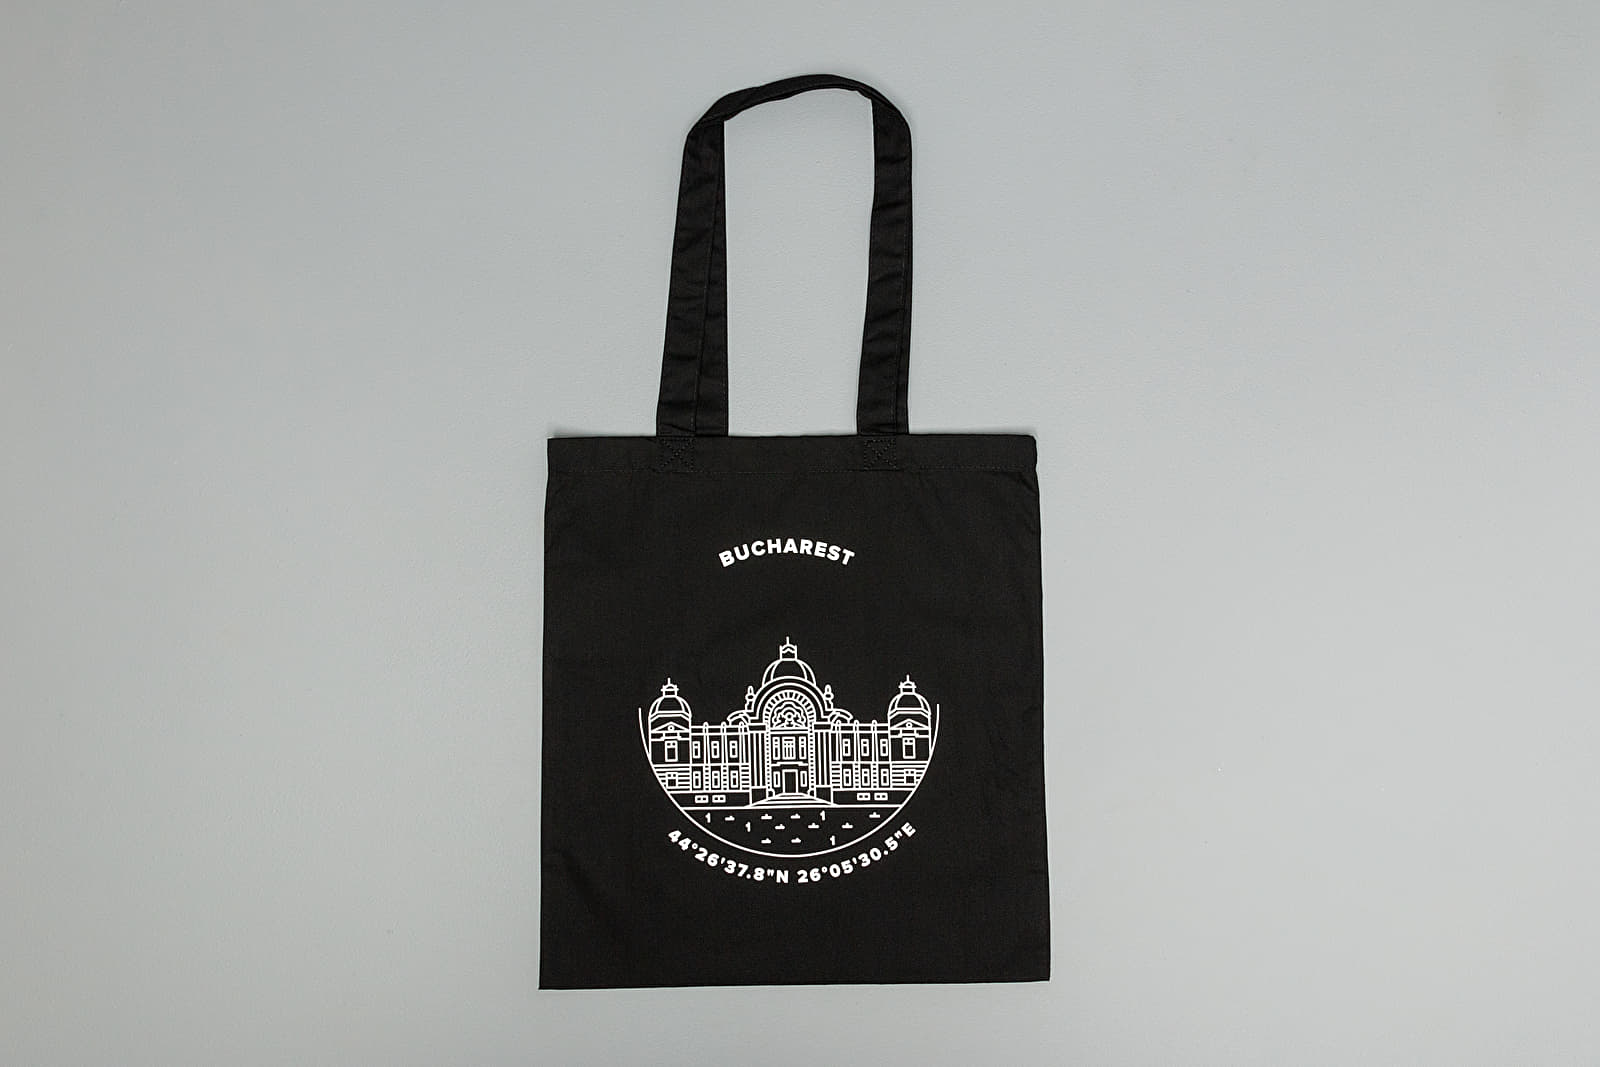 Borse a tracolla Footshop Bucharest Tote Bag Black